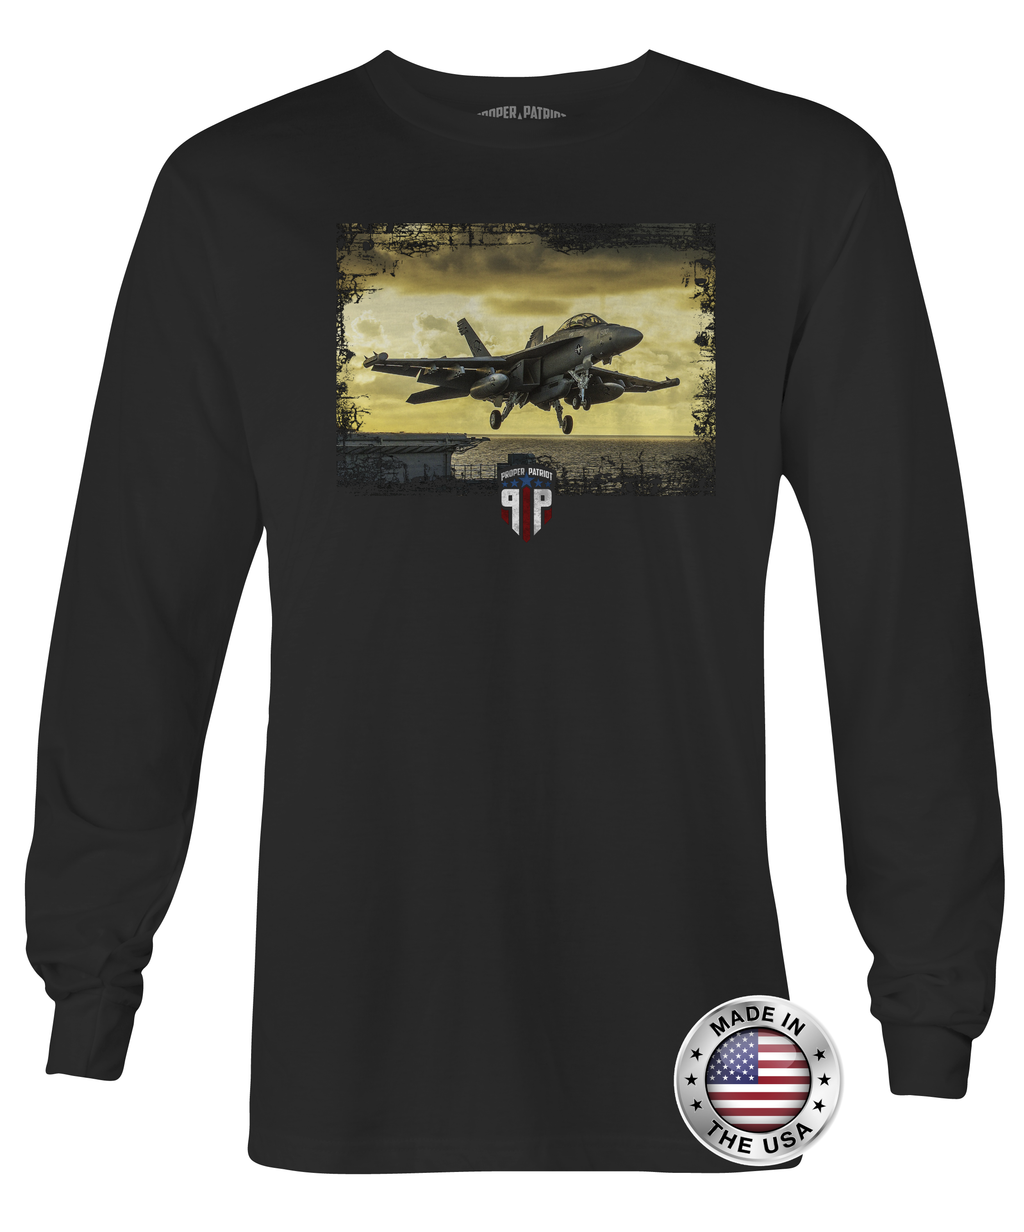 Sunset Takeoff Over Water - Unisex - Long Sleeve Shirt - Proper Patriot